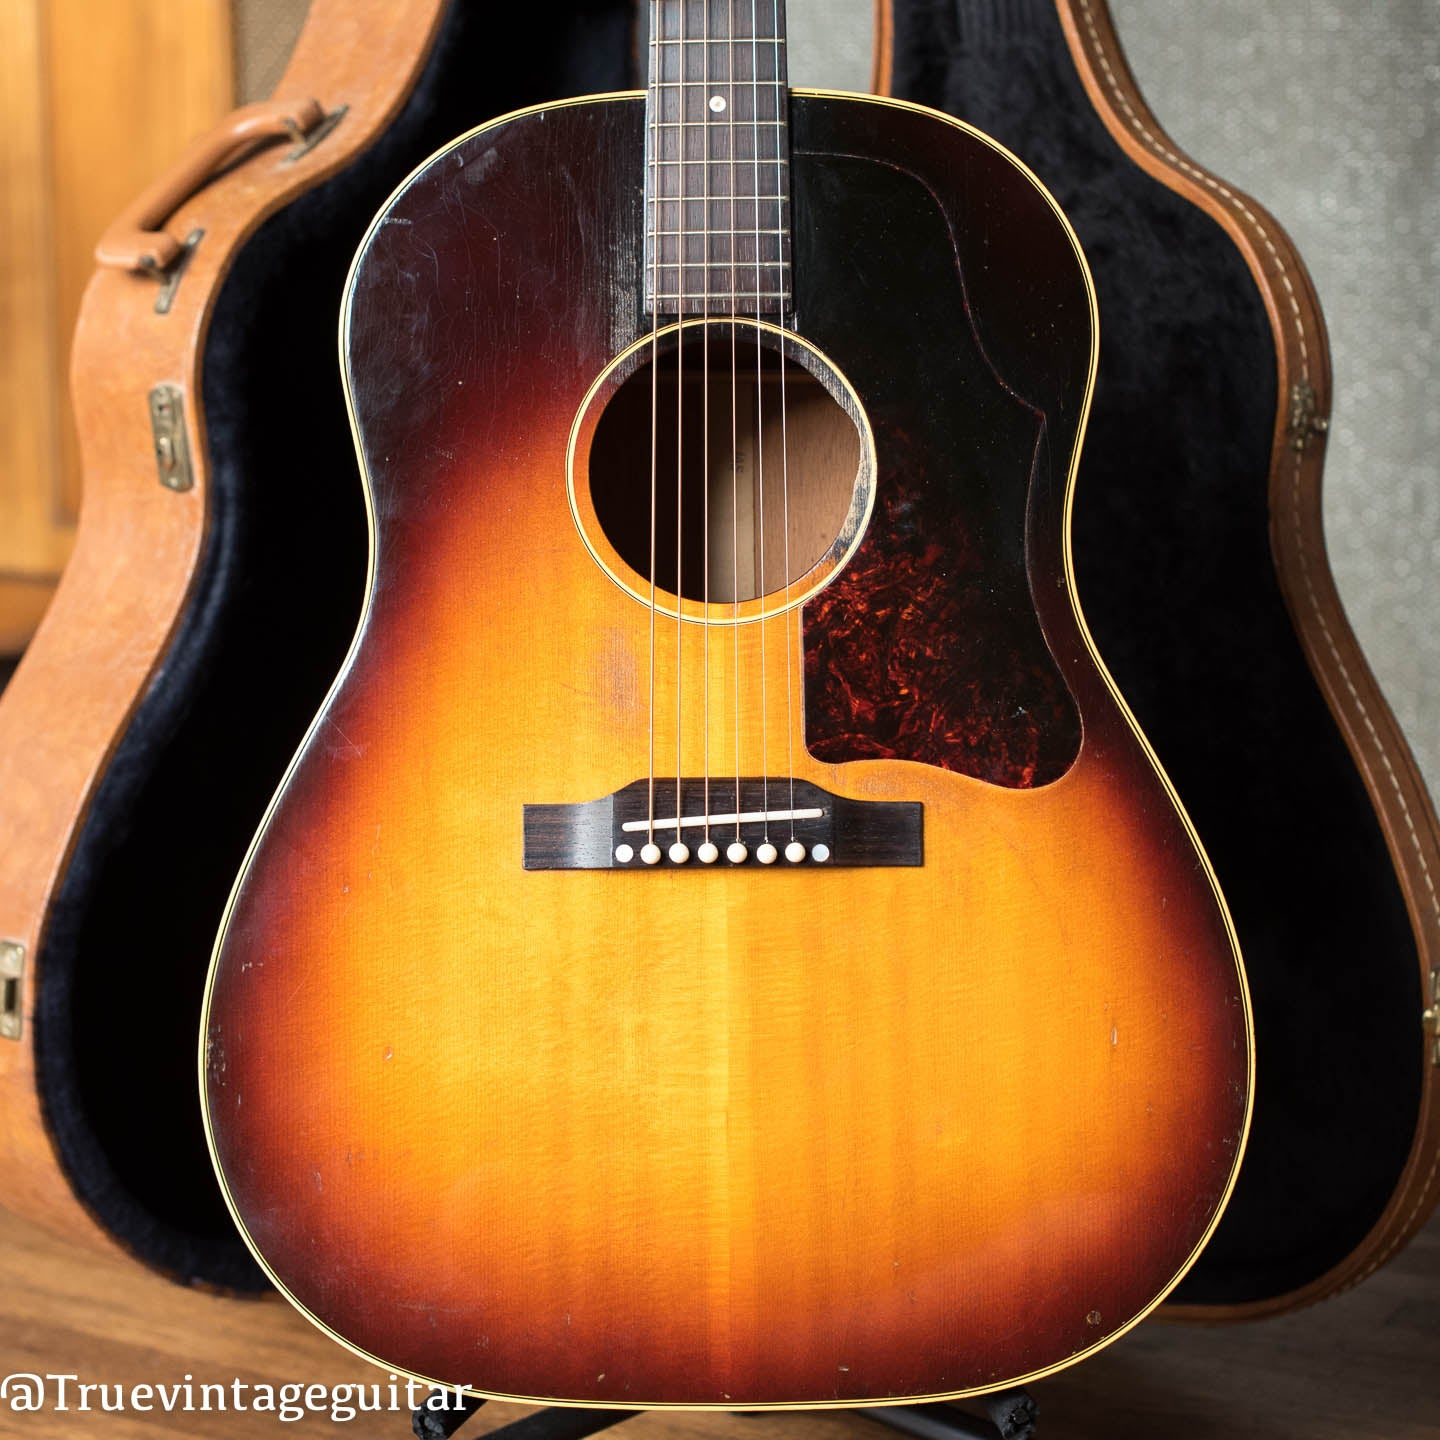 Vintage 1957 Gibson J-45 acoustic guitar